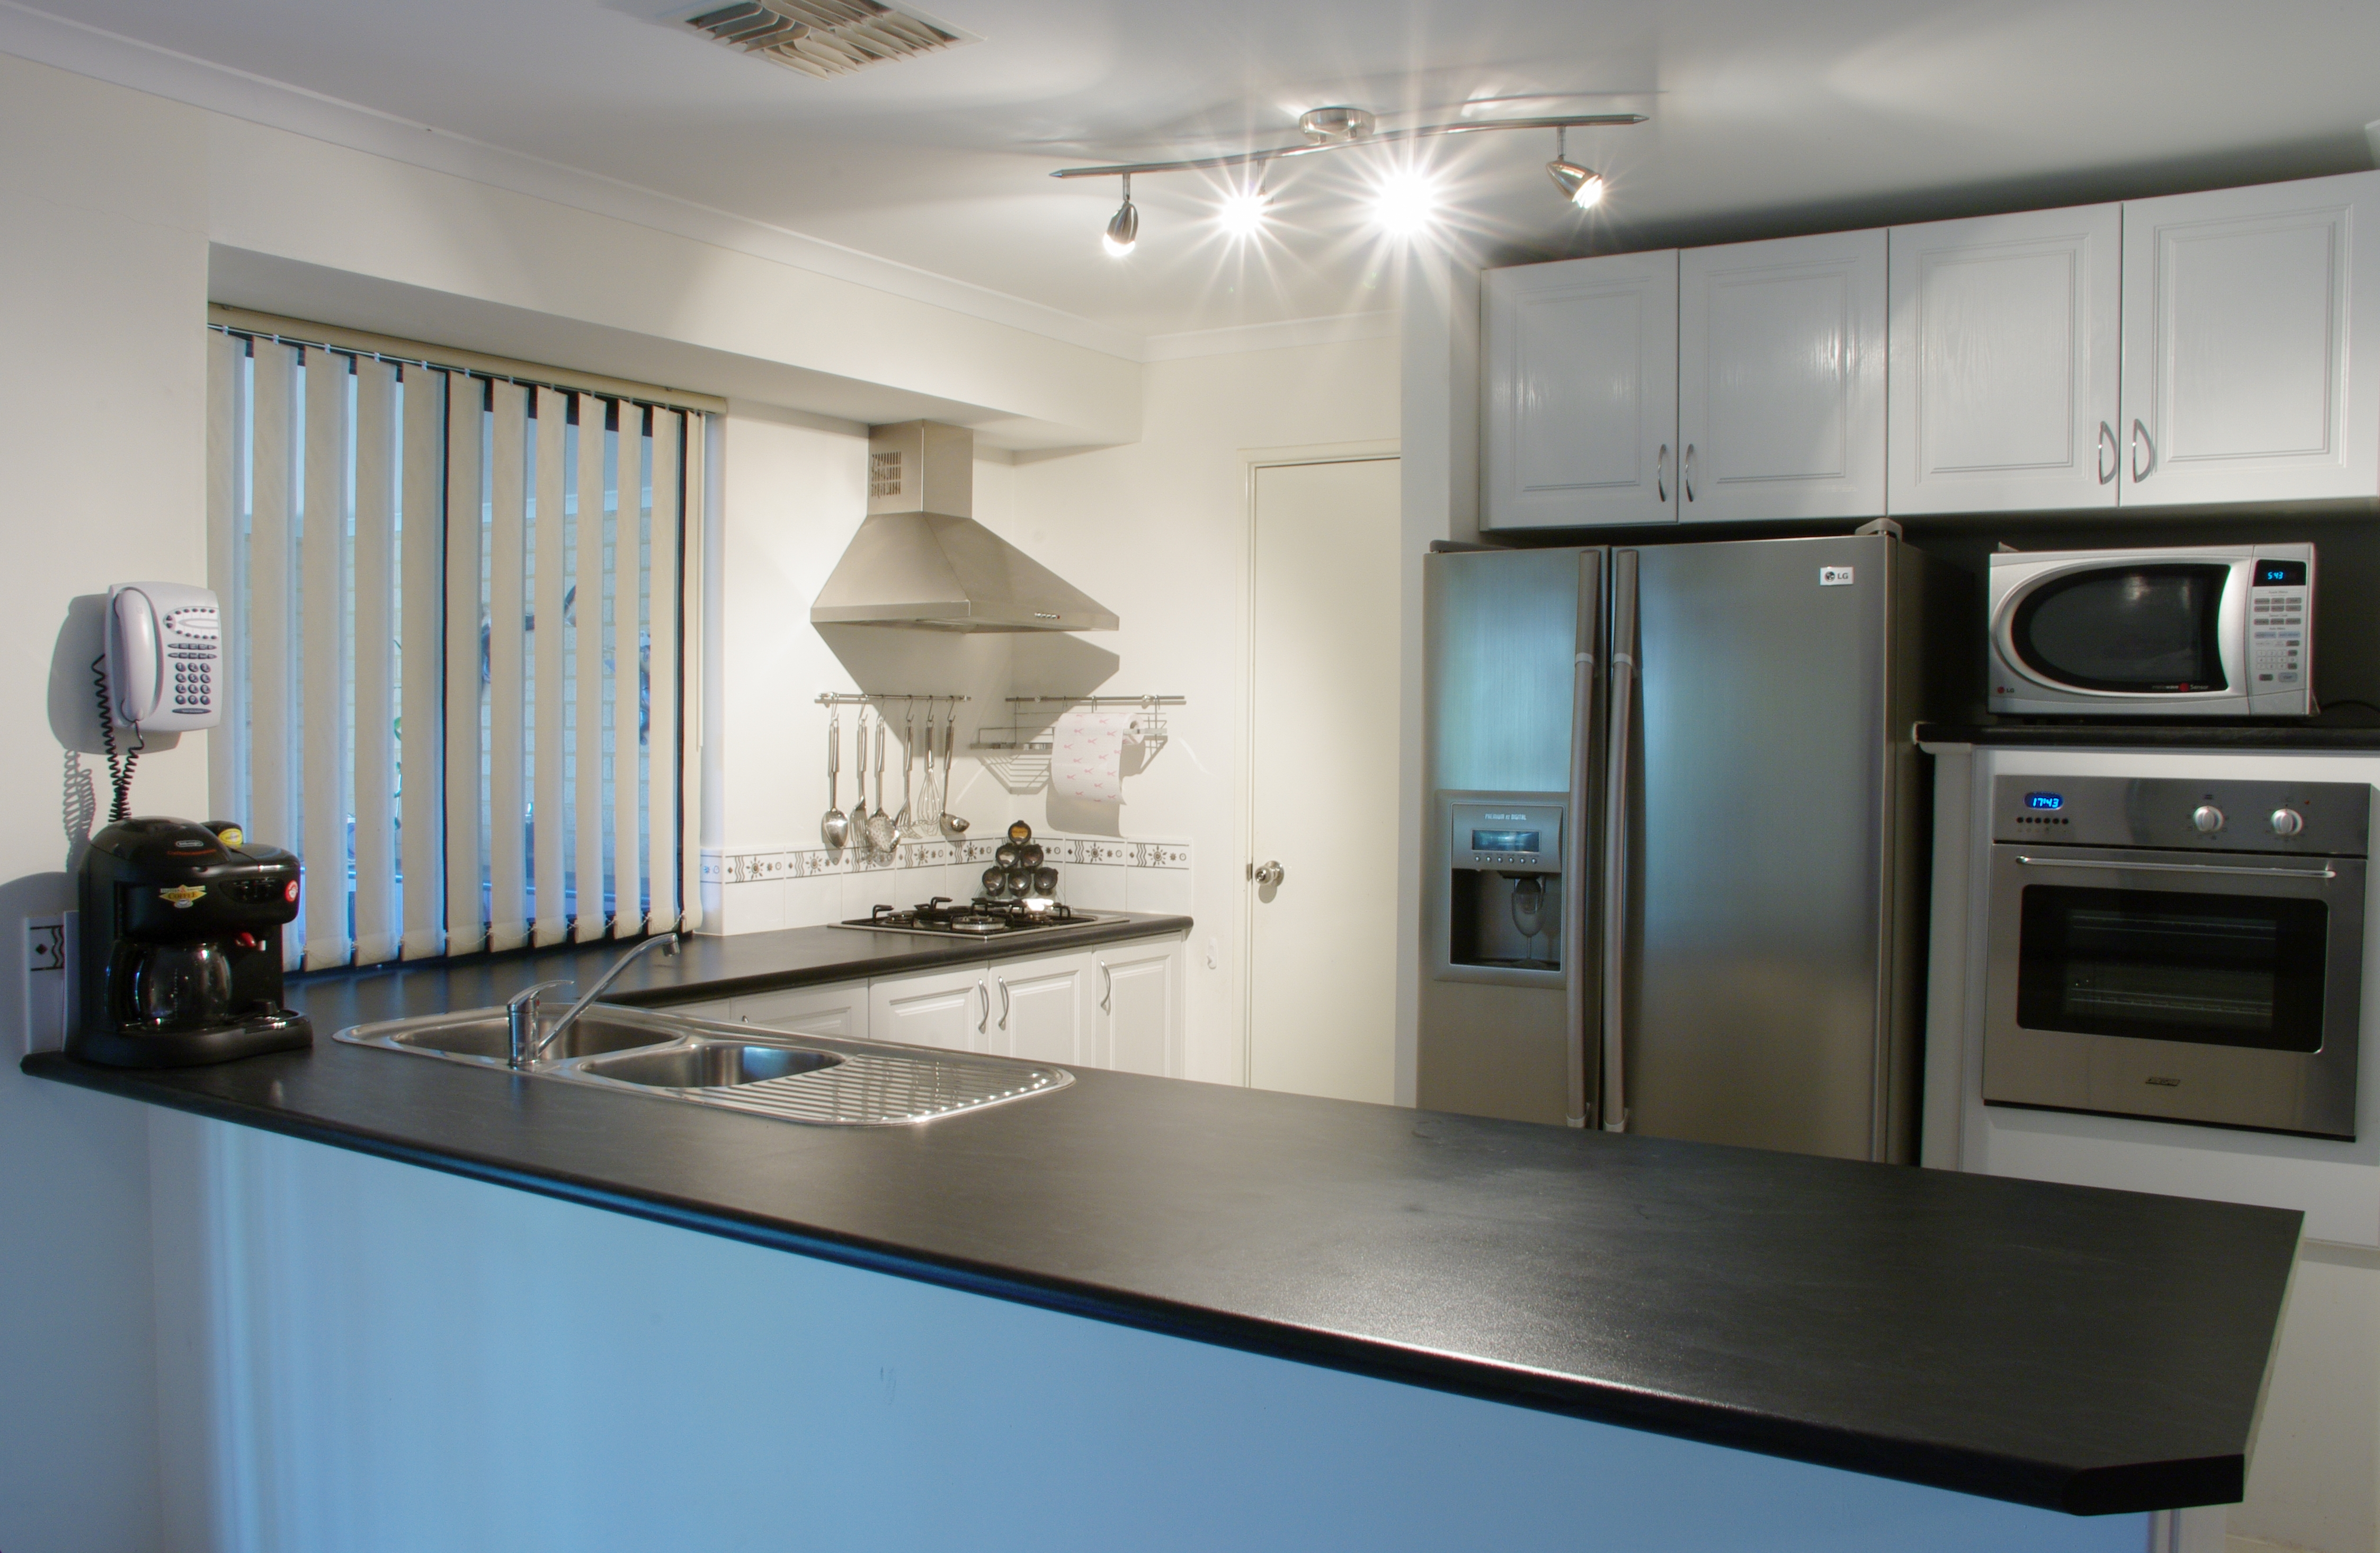 Counter top kitchen tables photo - 2